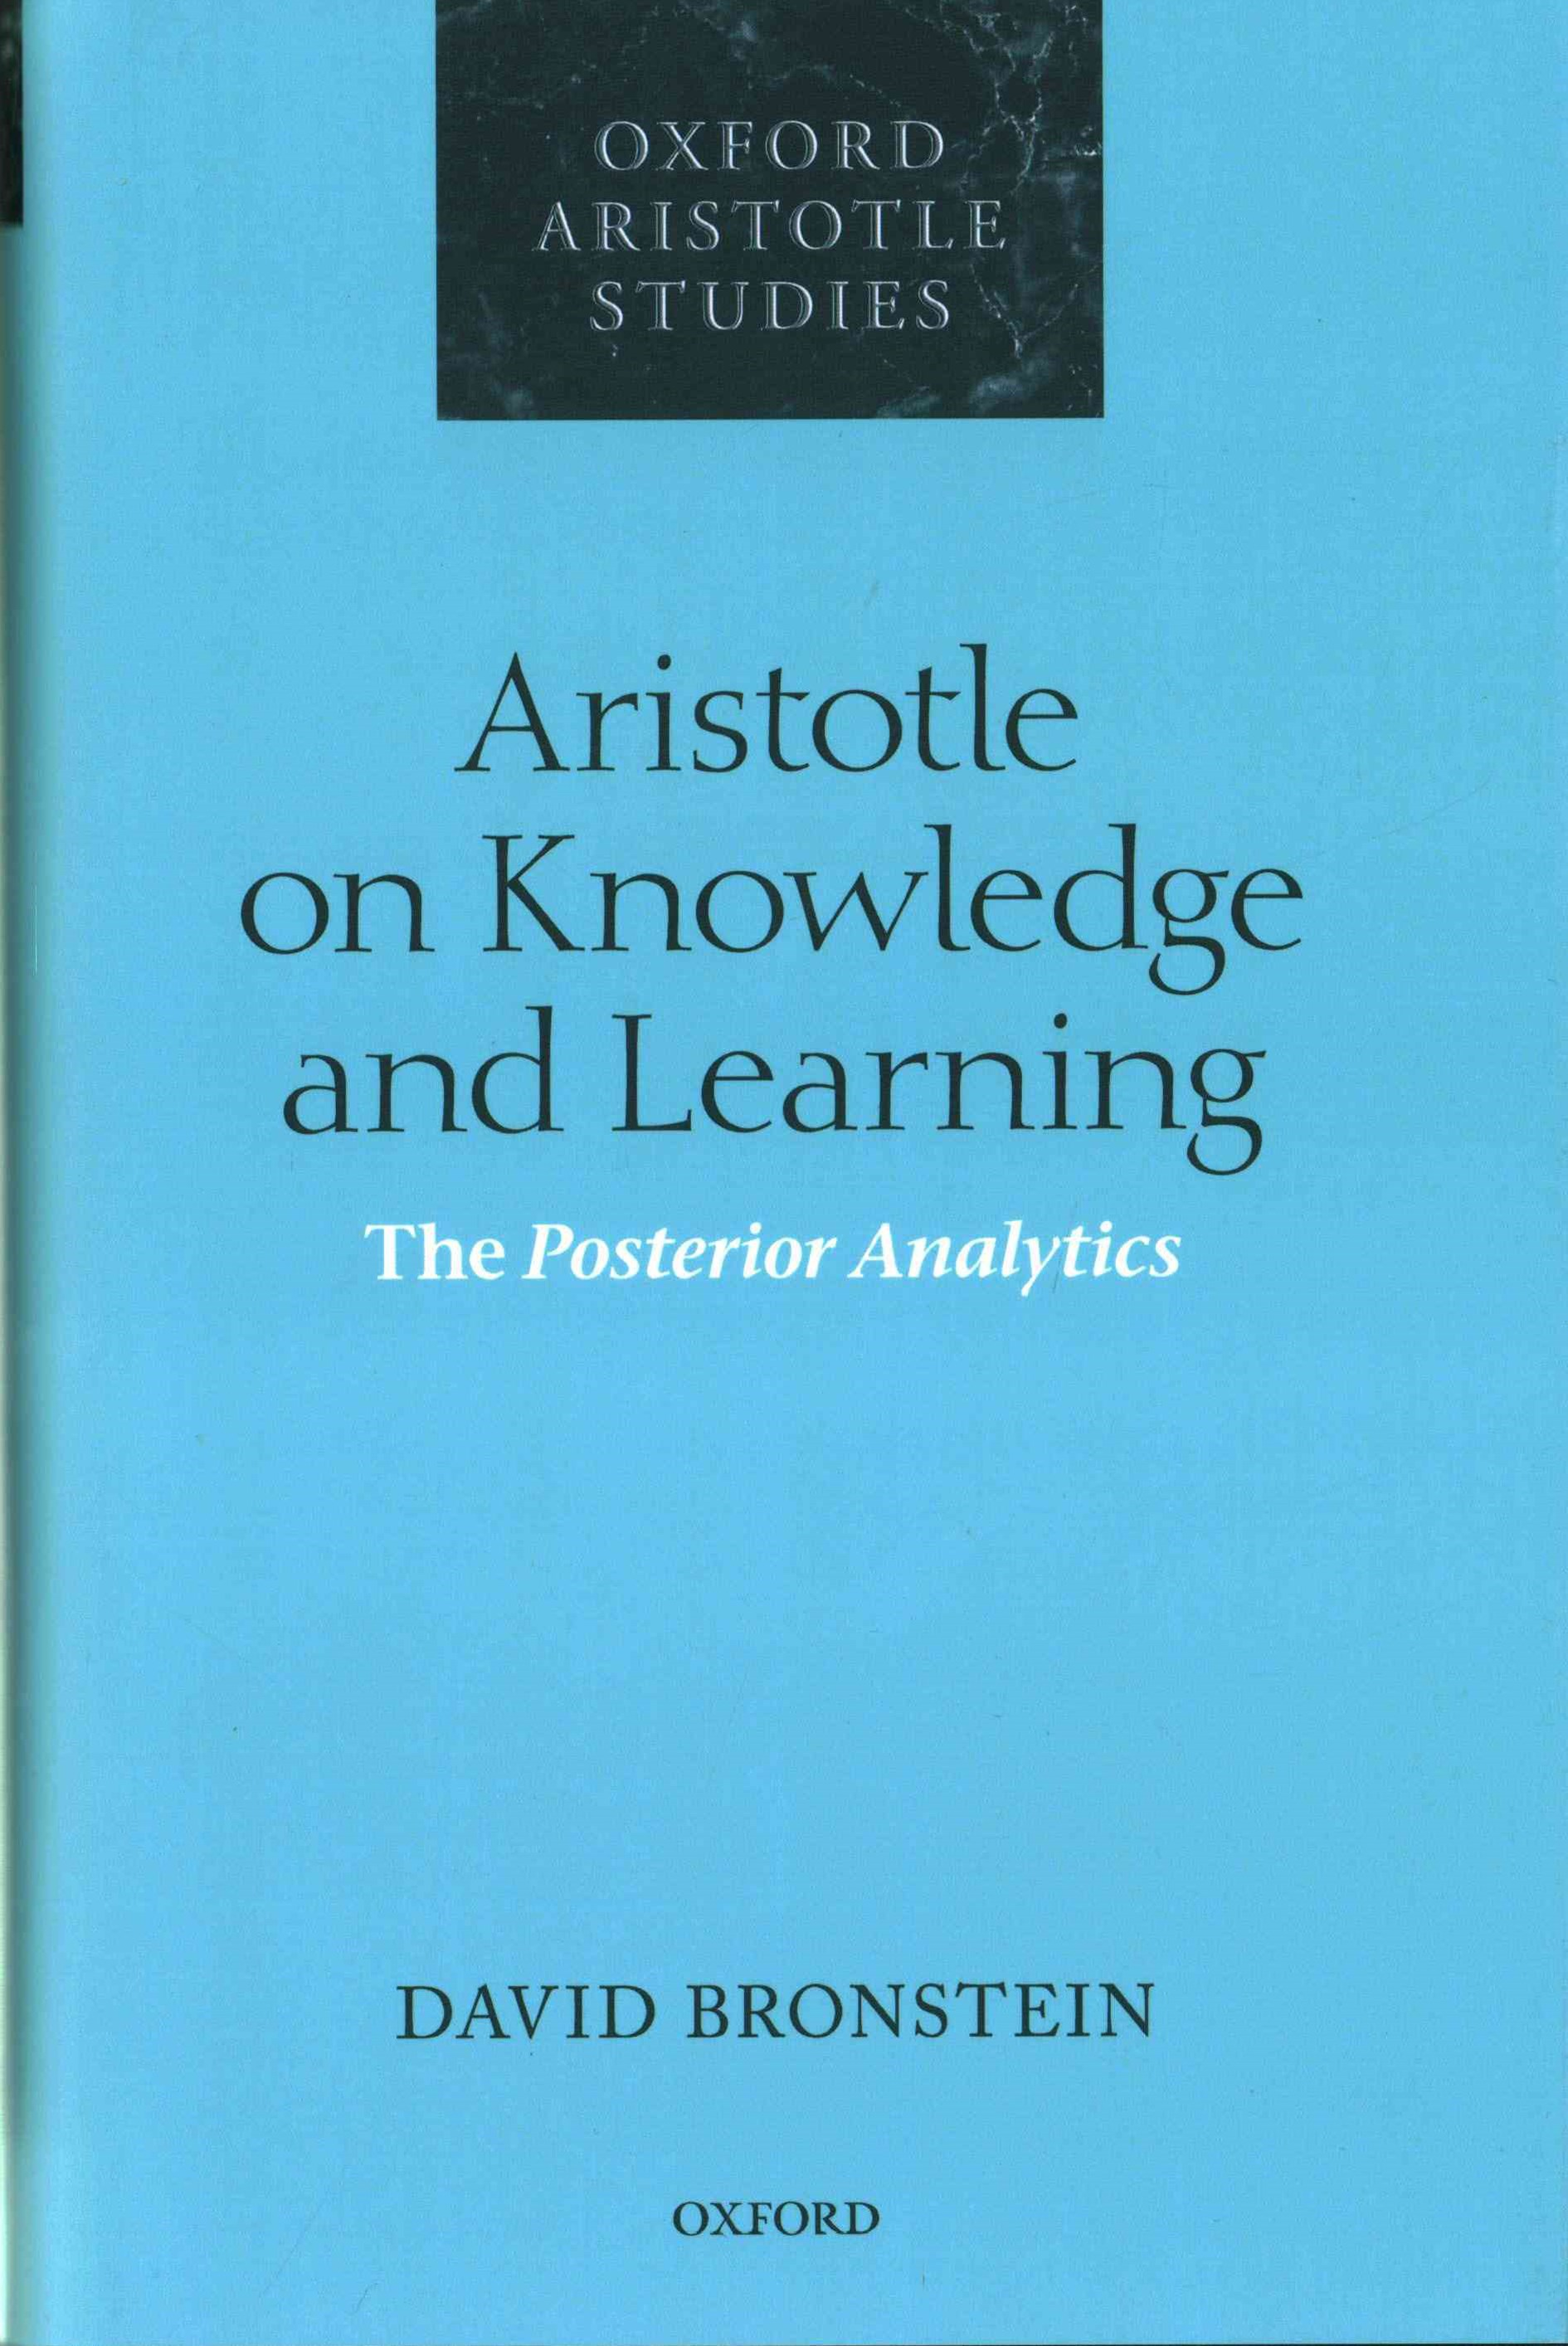 Aristotle on Knowledge and Learning